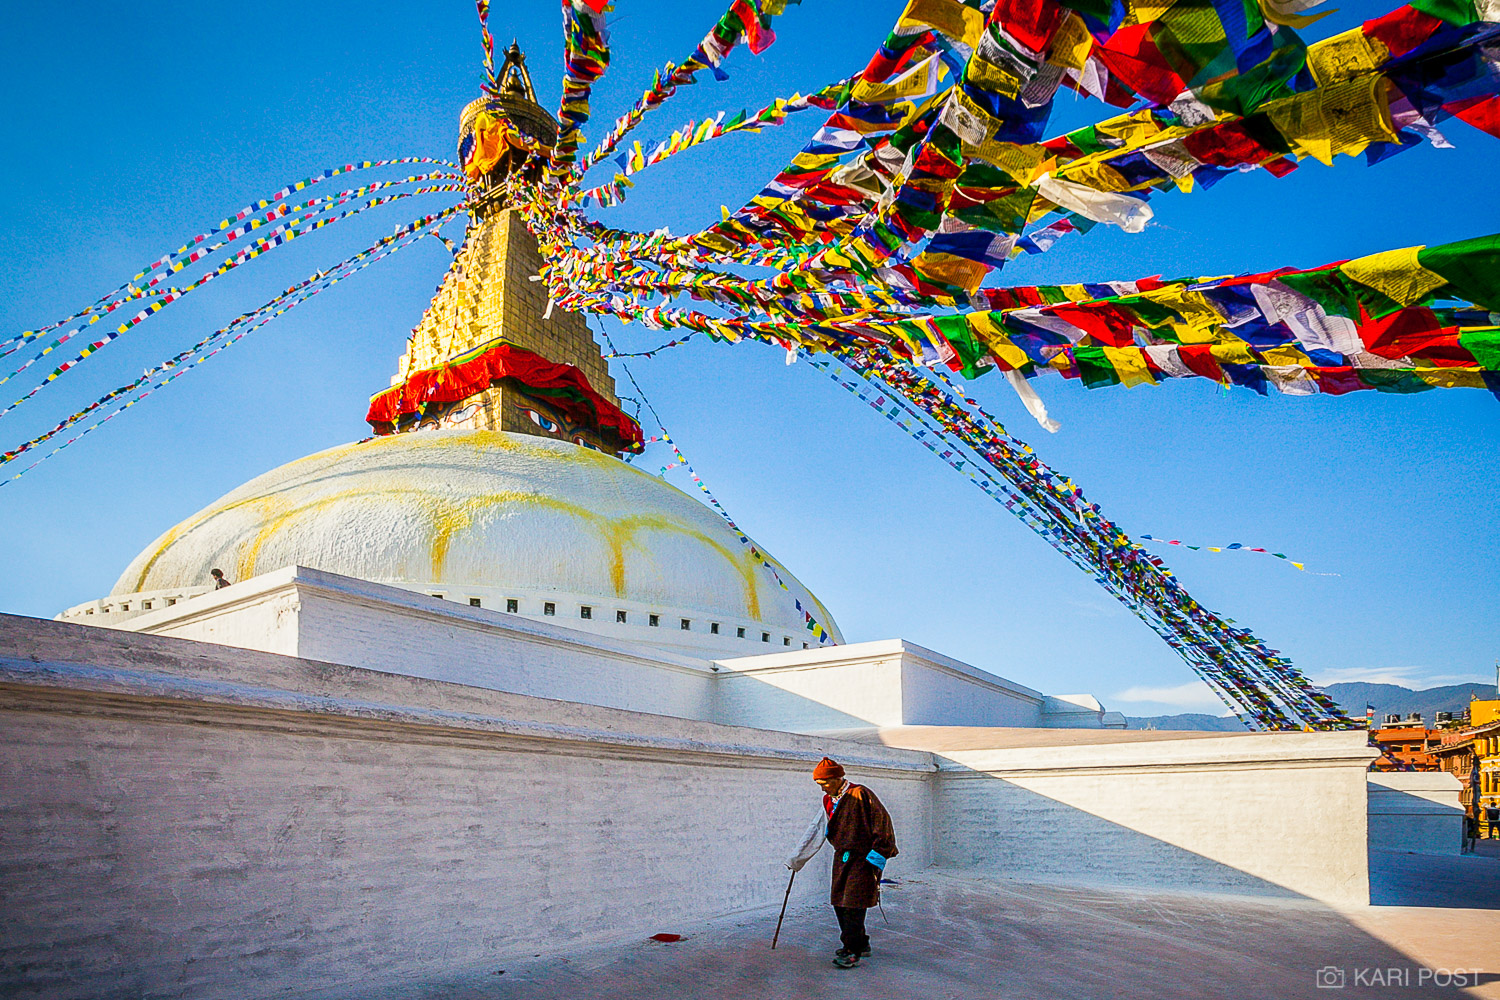 Kathmandu, Nepal, Nepali, Stupa Boudhanath, colorful, elderly man, man, old man, prayer flags, stupa, cane, travel, walking, photo